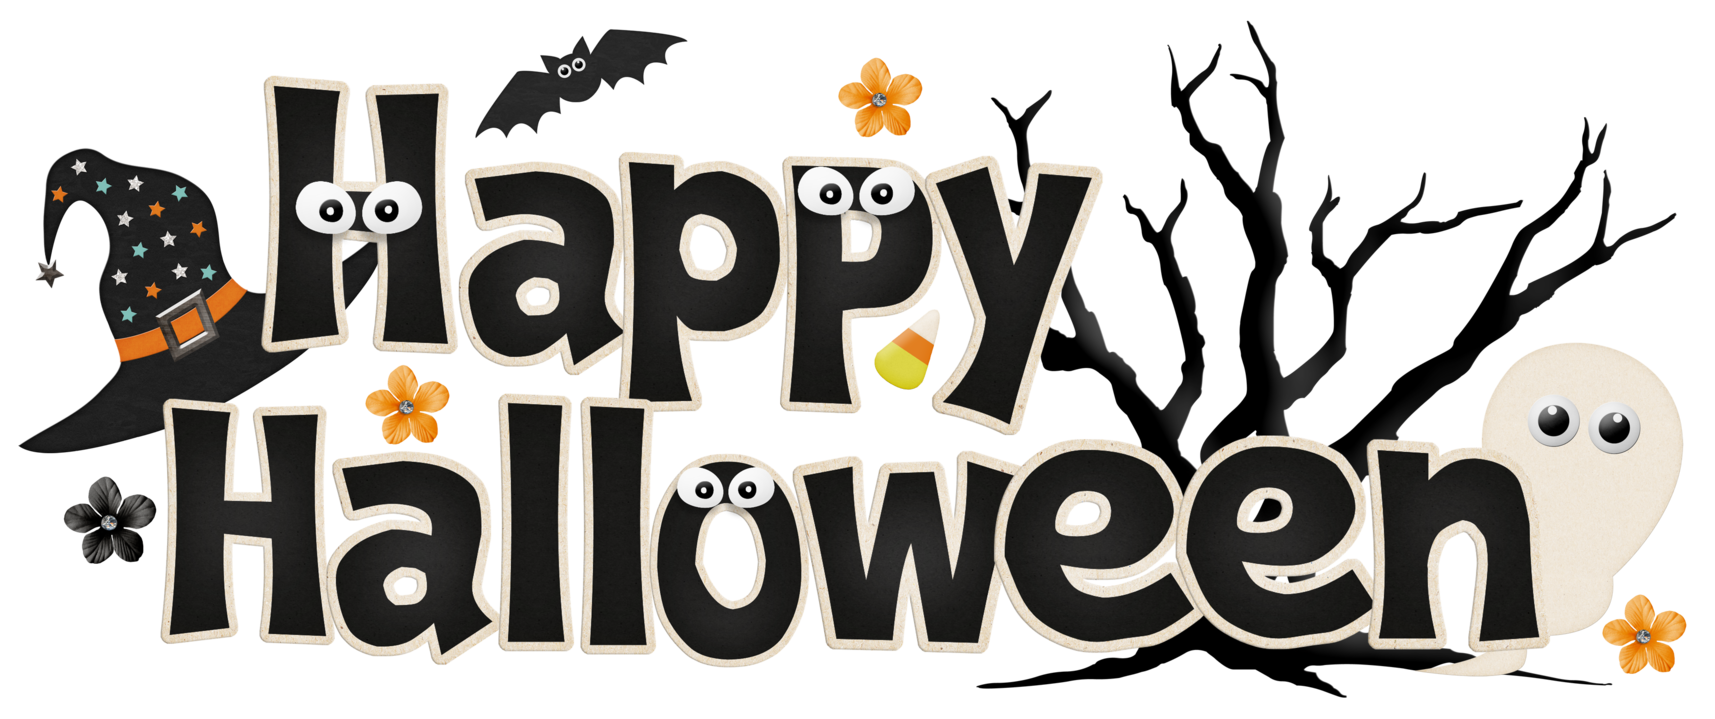 Free halloween birthday clipart clip royalty free library Month of october clipart free clipart images clipartwiz 2 clipartix ... clip royalty free library